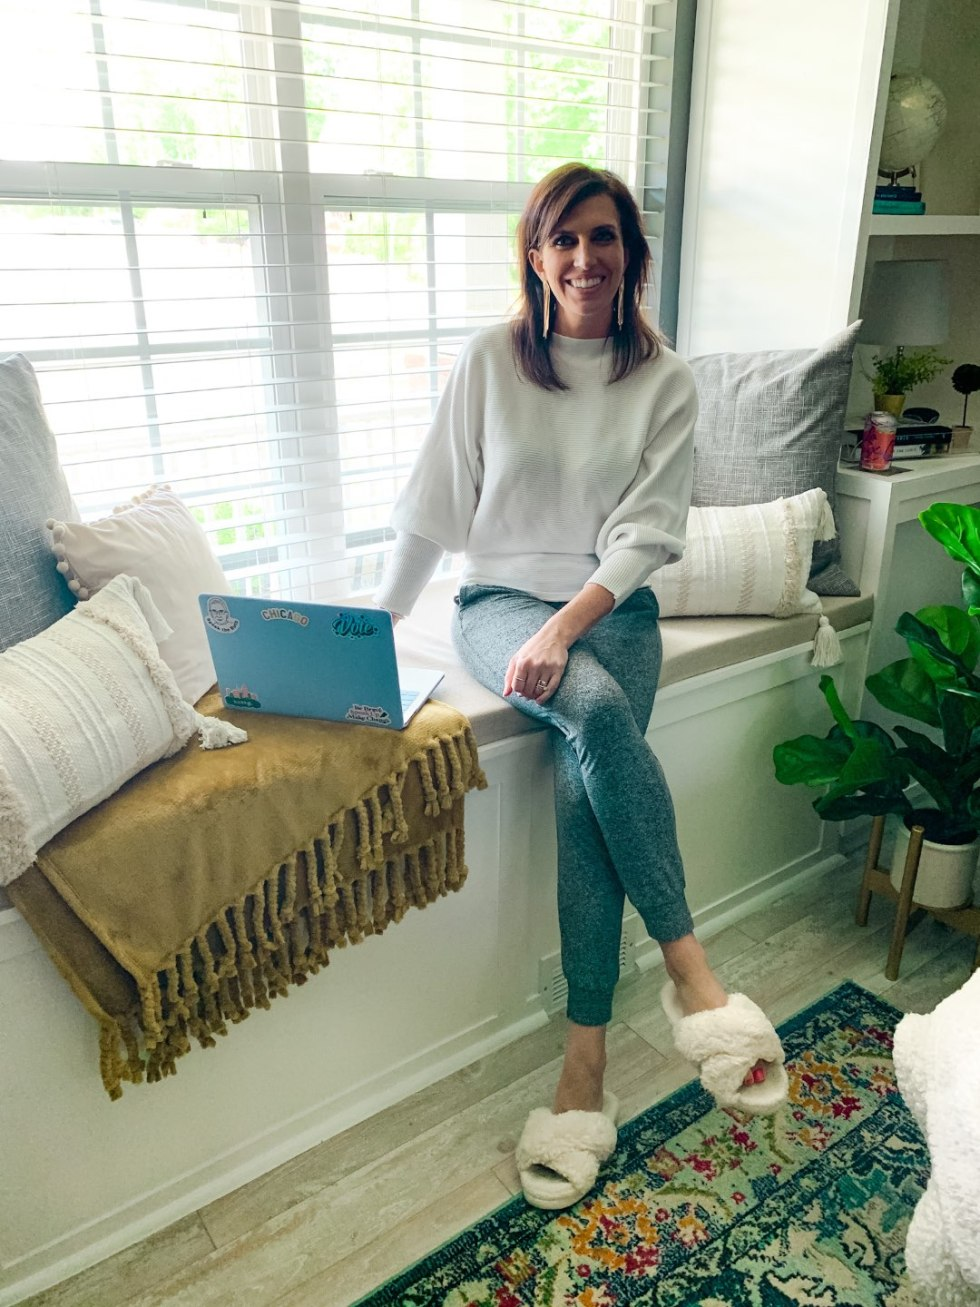 5 Stylish Teleworking Outfits for Women - I'm Fixin' To - @mbg0112 | Teleworking Outfits for Women by popular North Carolina fashion blog, I'm Fixin' To: image of a woman sitting on a window bench and wearing a Amazon GABERLY Boat Neck Batwing Sleeves Dolman Knitted Sweater and Nordstrom Serene Cozy Mélange Jogger Pants ZELLA.